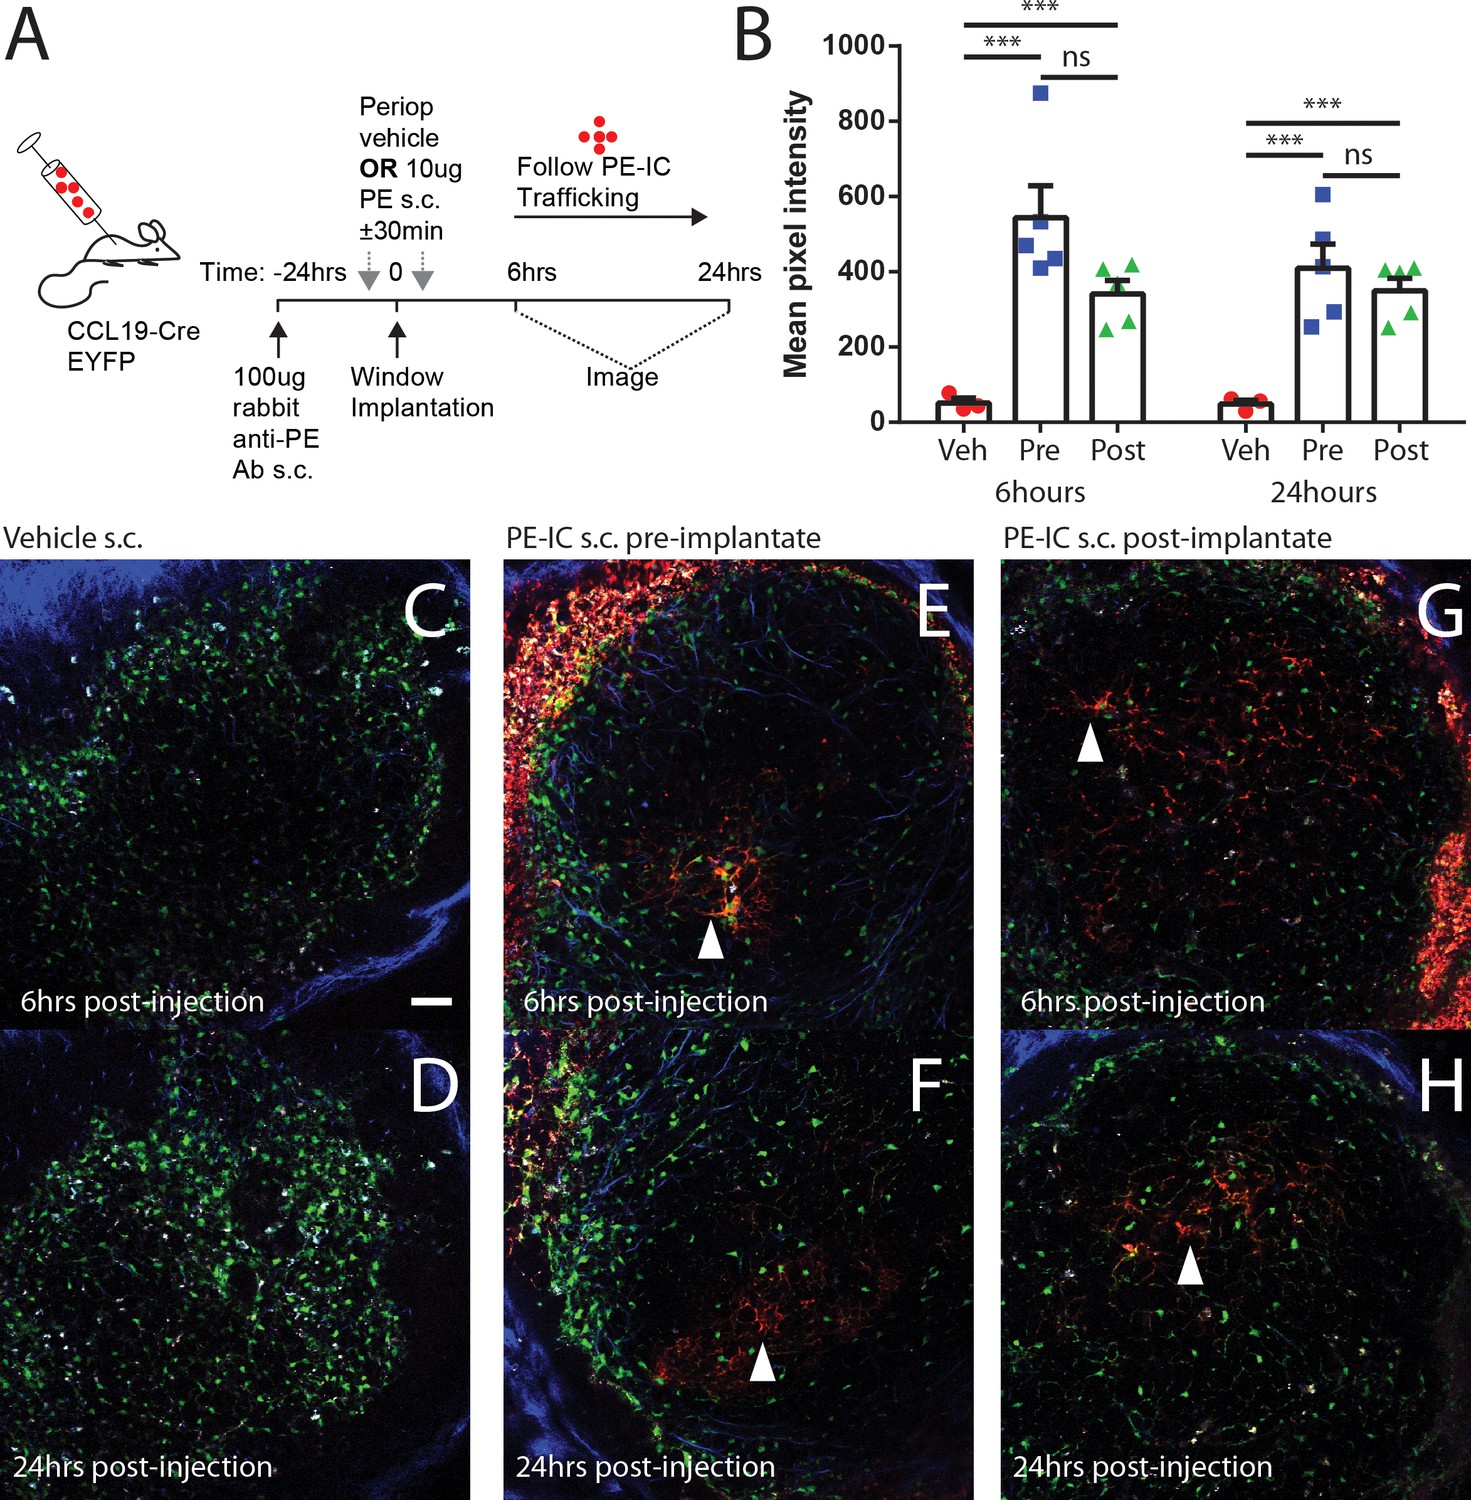 Capturing change in clonal composition amongst single mouse germinal